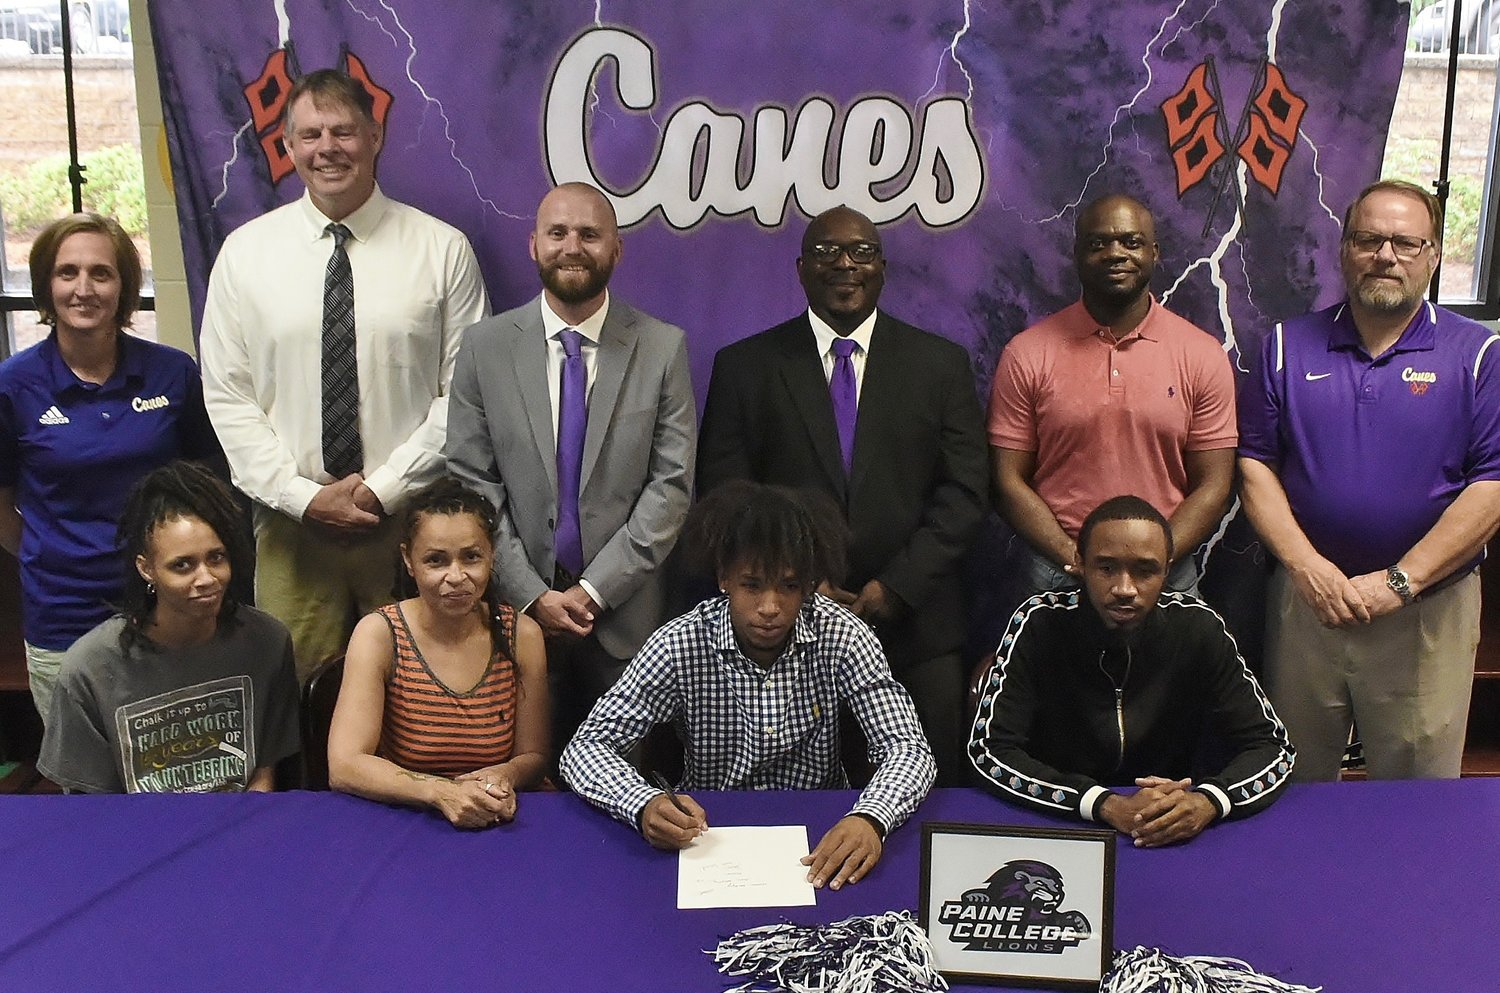 Cartersville High graduate Perignon Dyer signed to play basketball at Paine College in Augusta. On hand for the signing were, from left, front row: DaCola Dyer, sister; Debra Murphy, mother; Tyrell Banks, uncle; back row, Shelley Tierce, CHS principal; Mike Tobin, CHS head basketball coach; Caleb Freeman, CHS assistant basketball coach; Cedric Ward, CHS assistant basketball coach; Wayne Kent, CHS assistant basketball coach; and Darrell Demastus, CHS athletic director.